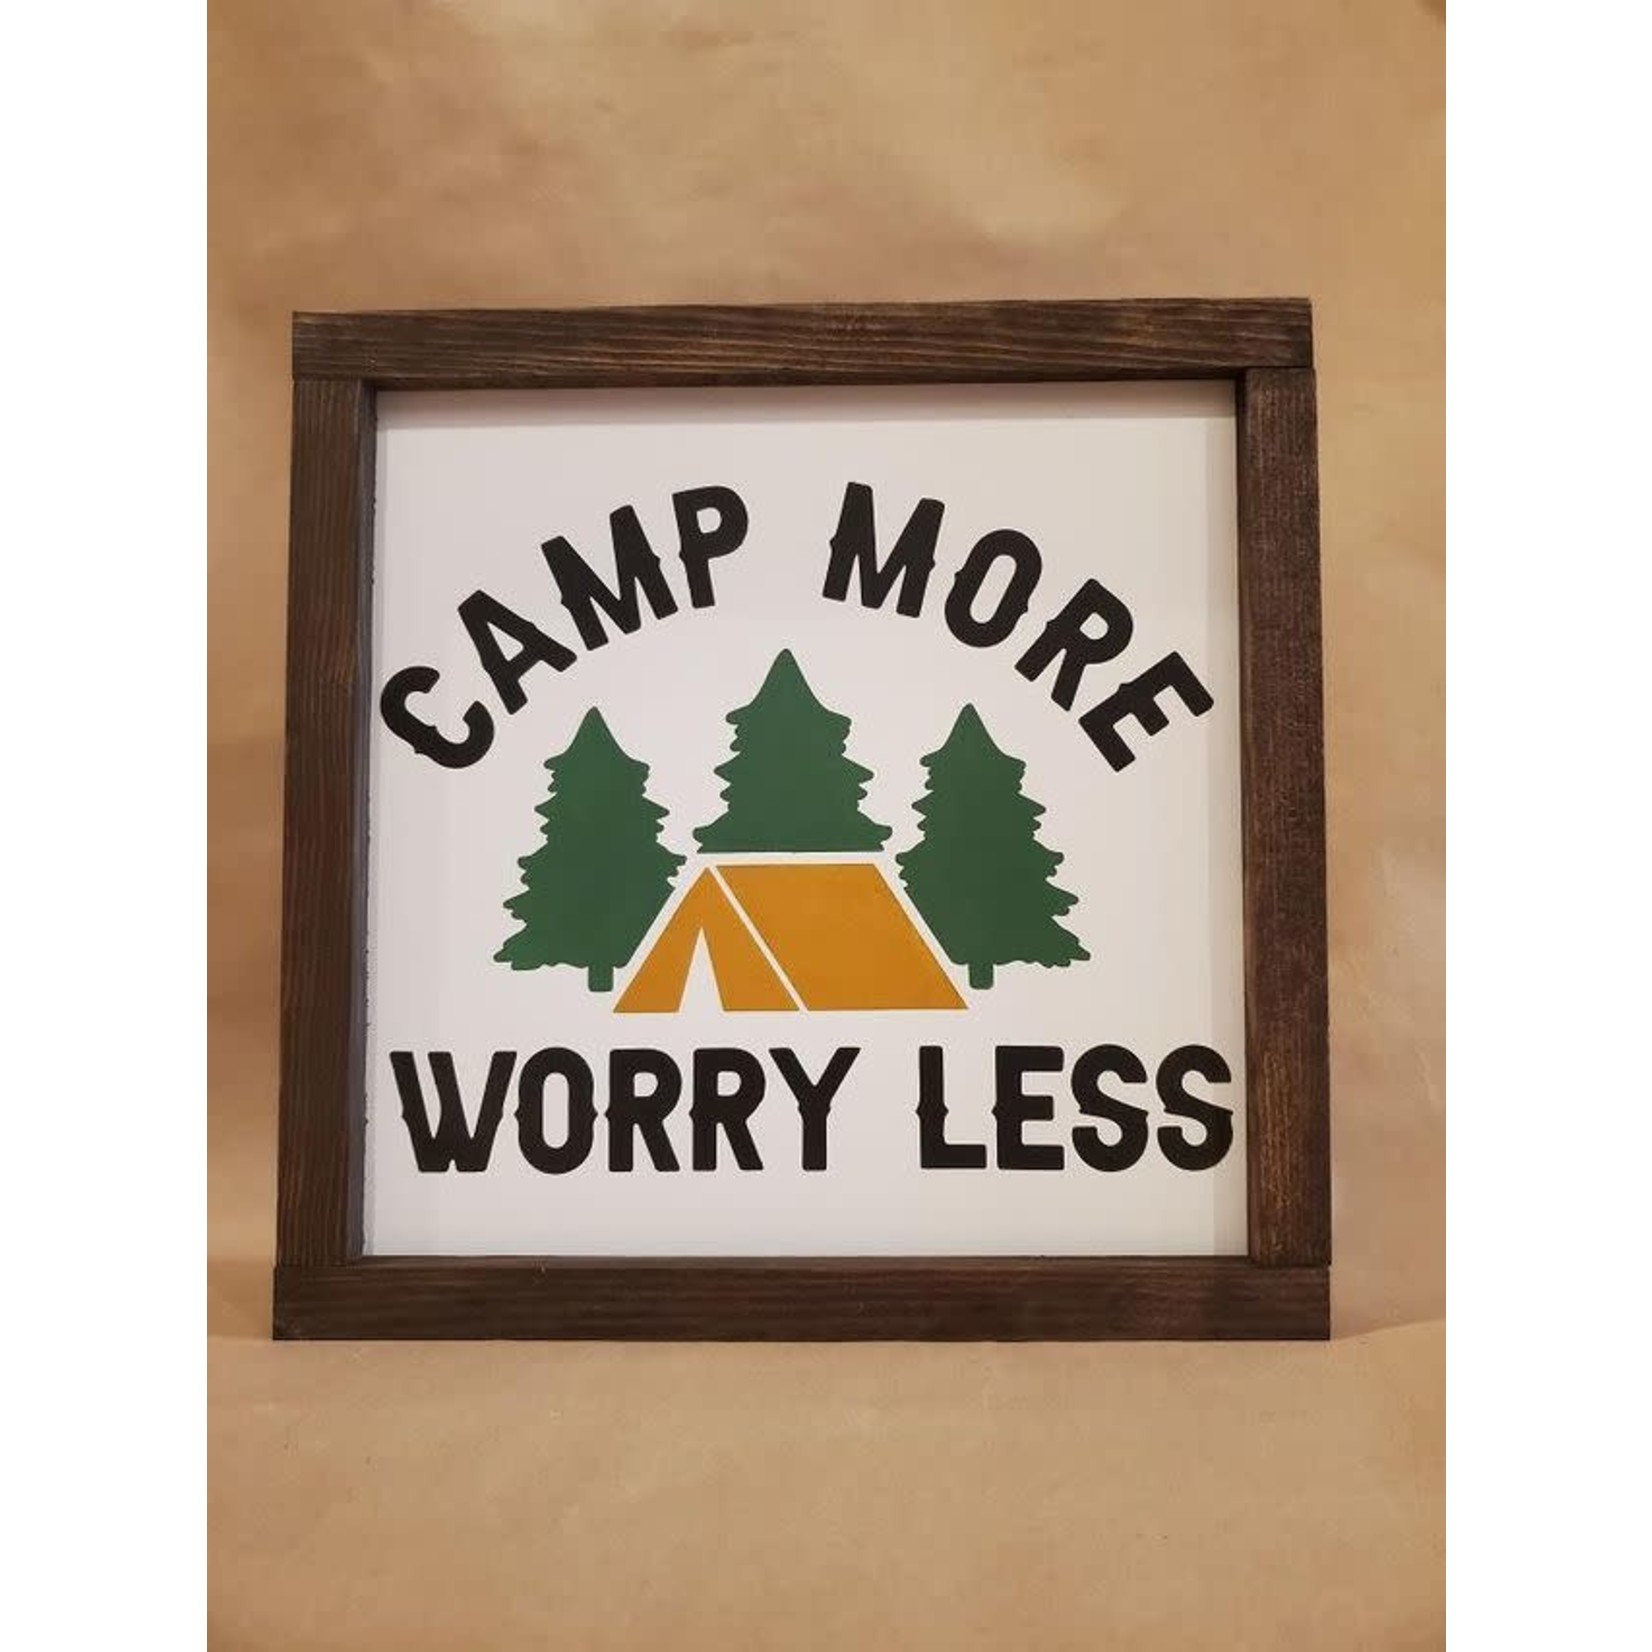 Favourite Things wood Camp more, worry less 10x10 framed sign